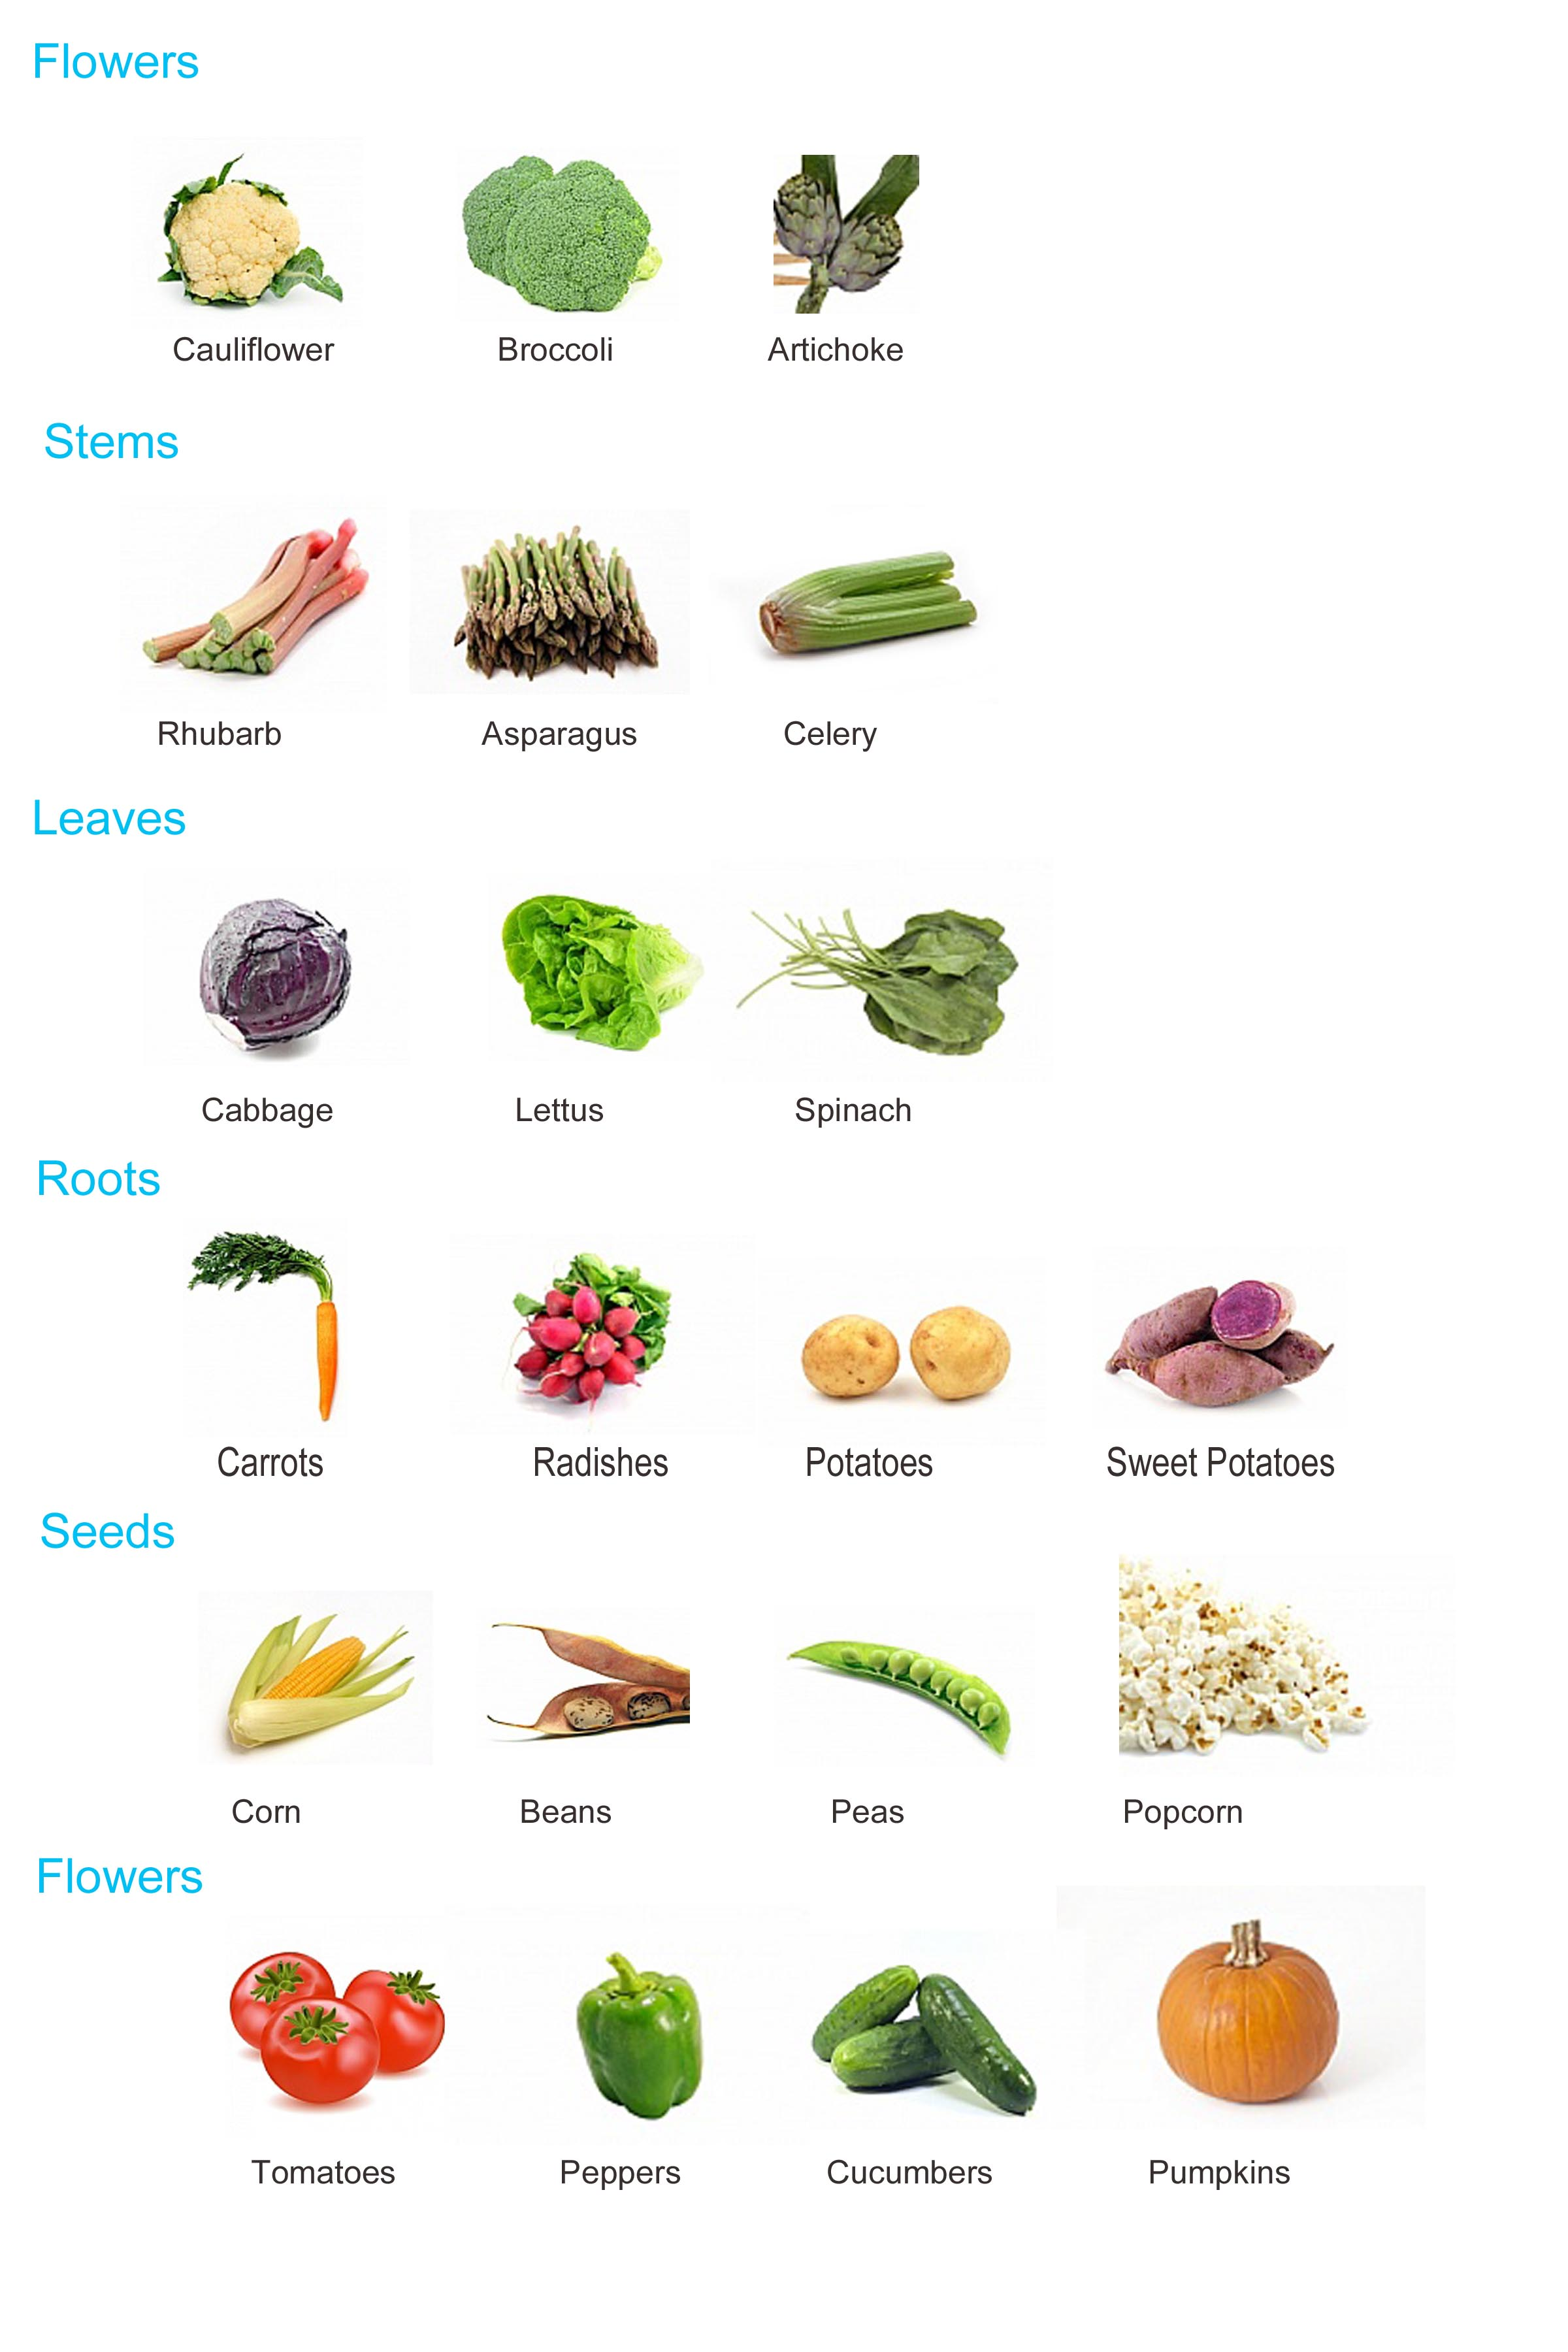 Plant Parts Used for Food http://daddystractor.com/2013/03/04/a-farm-lesson-plan-who-grew-my-soup/